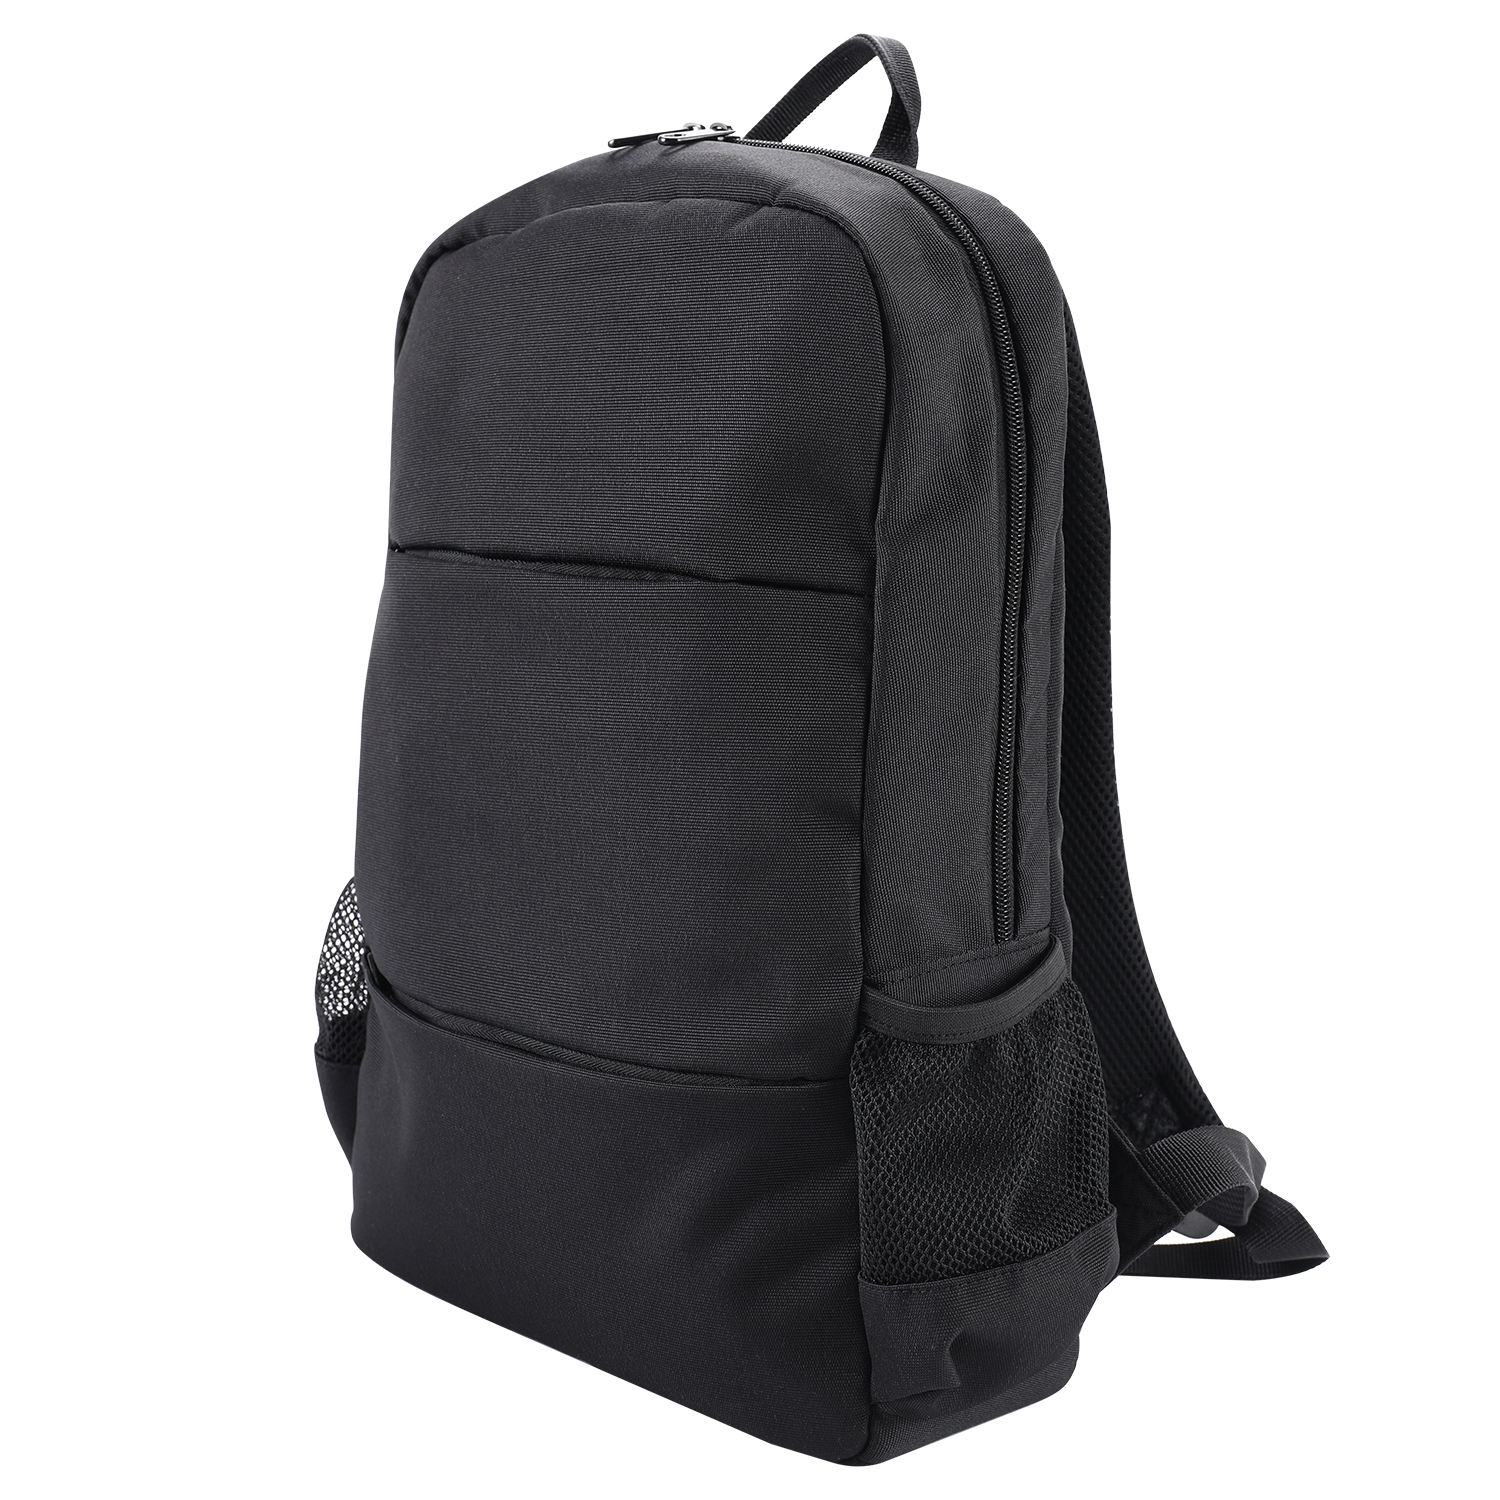 External Frame New Laptop Backpack For Mens Bag Manufacturer School Business 15.6 Inches